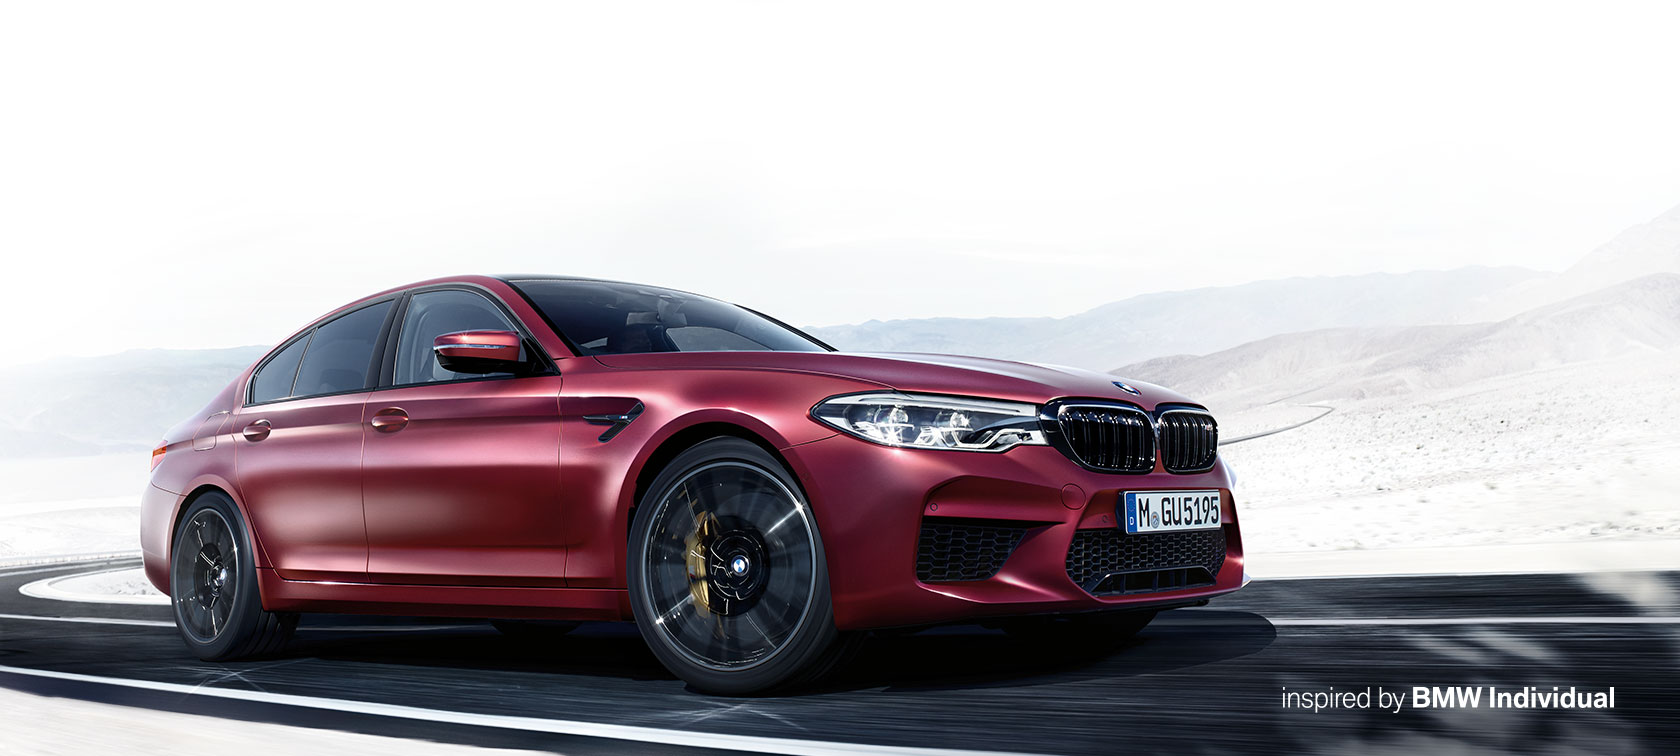 bmw m5 first edition for sale uk